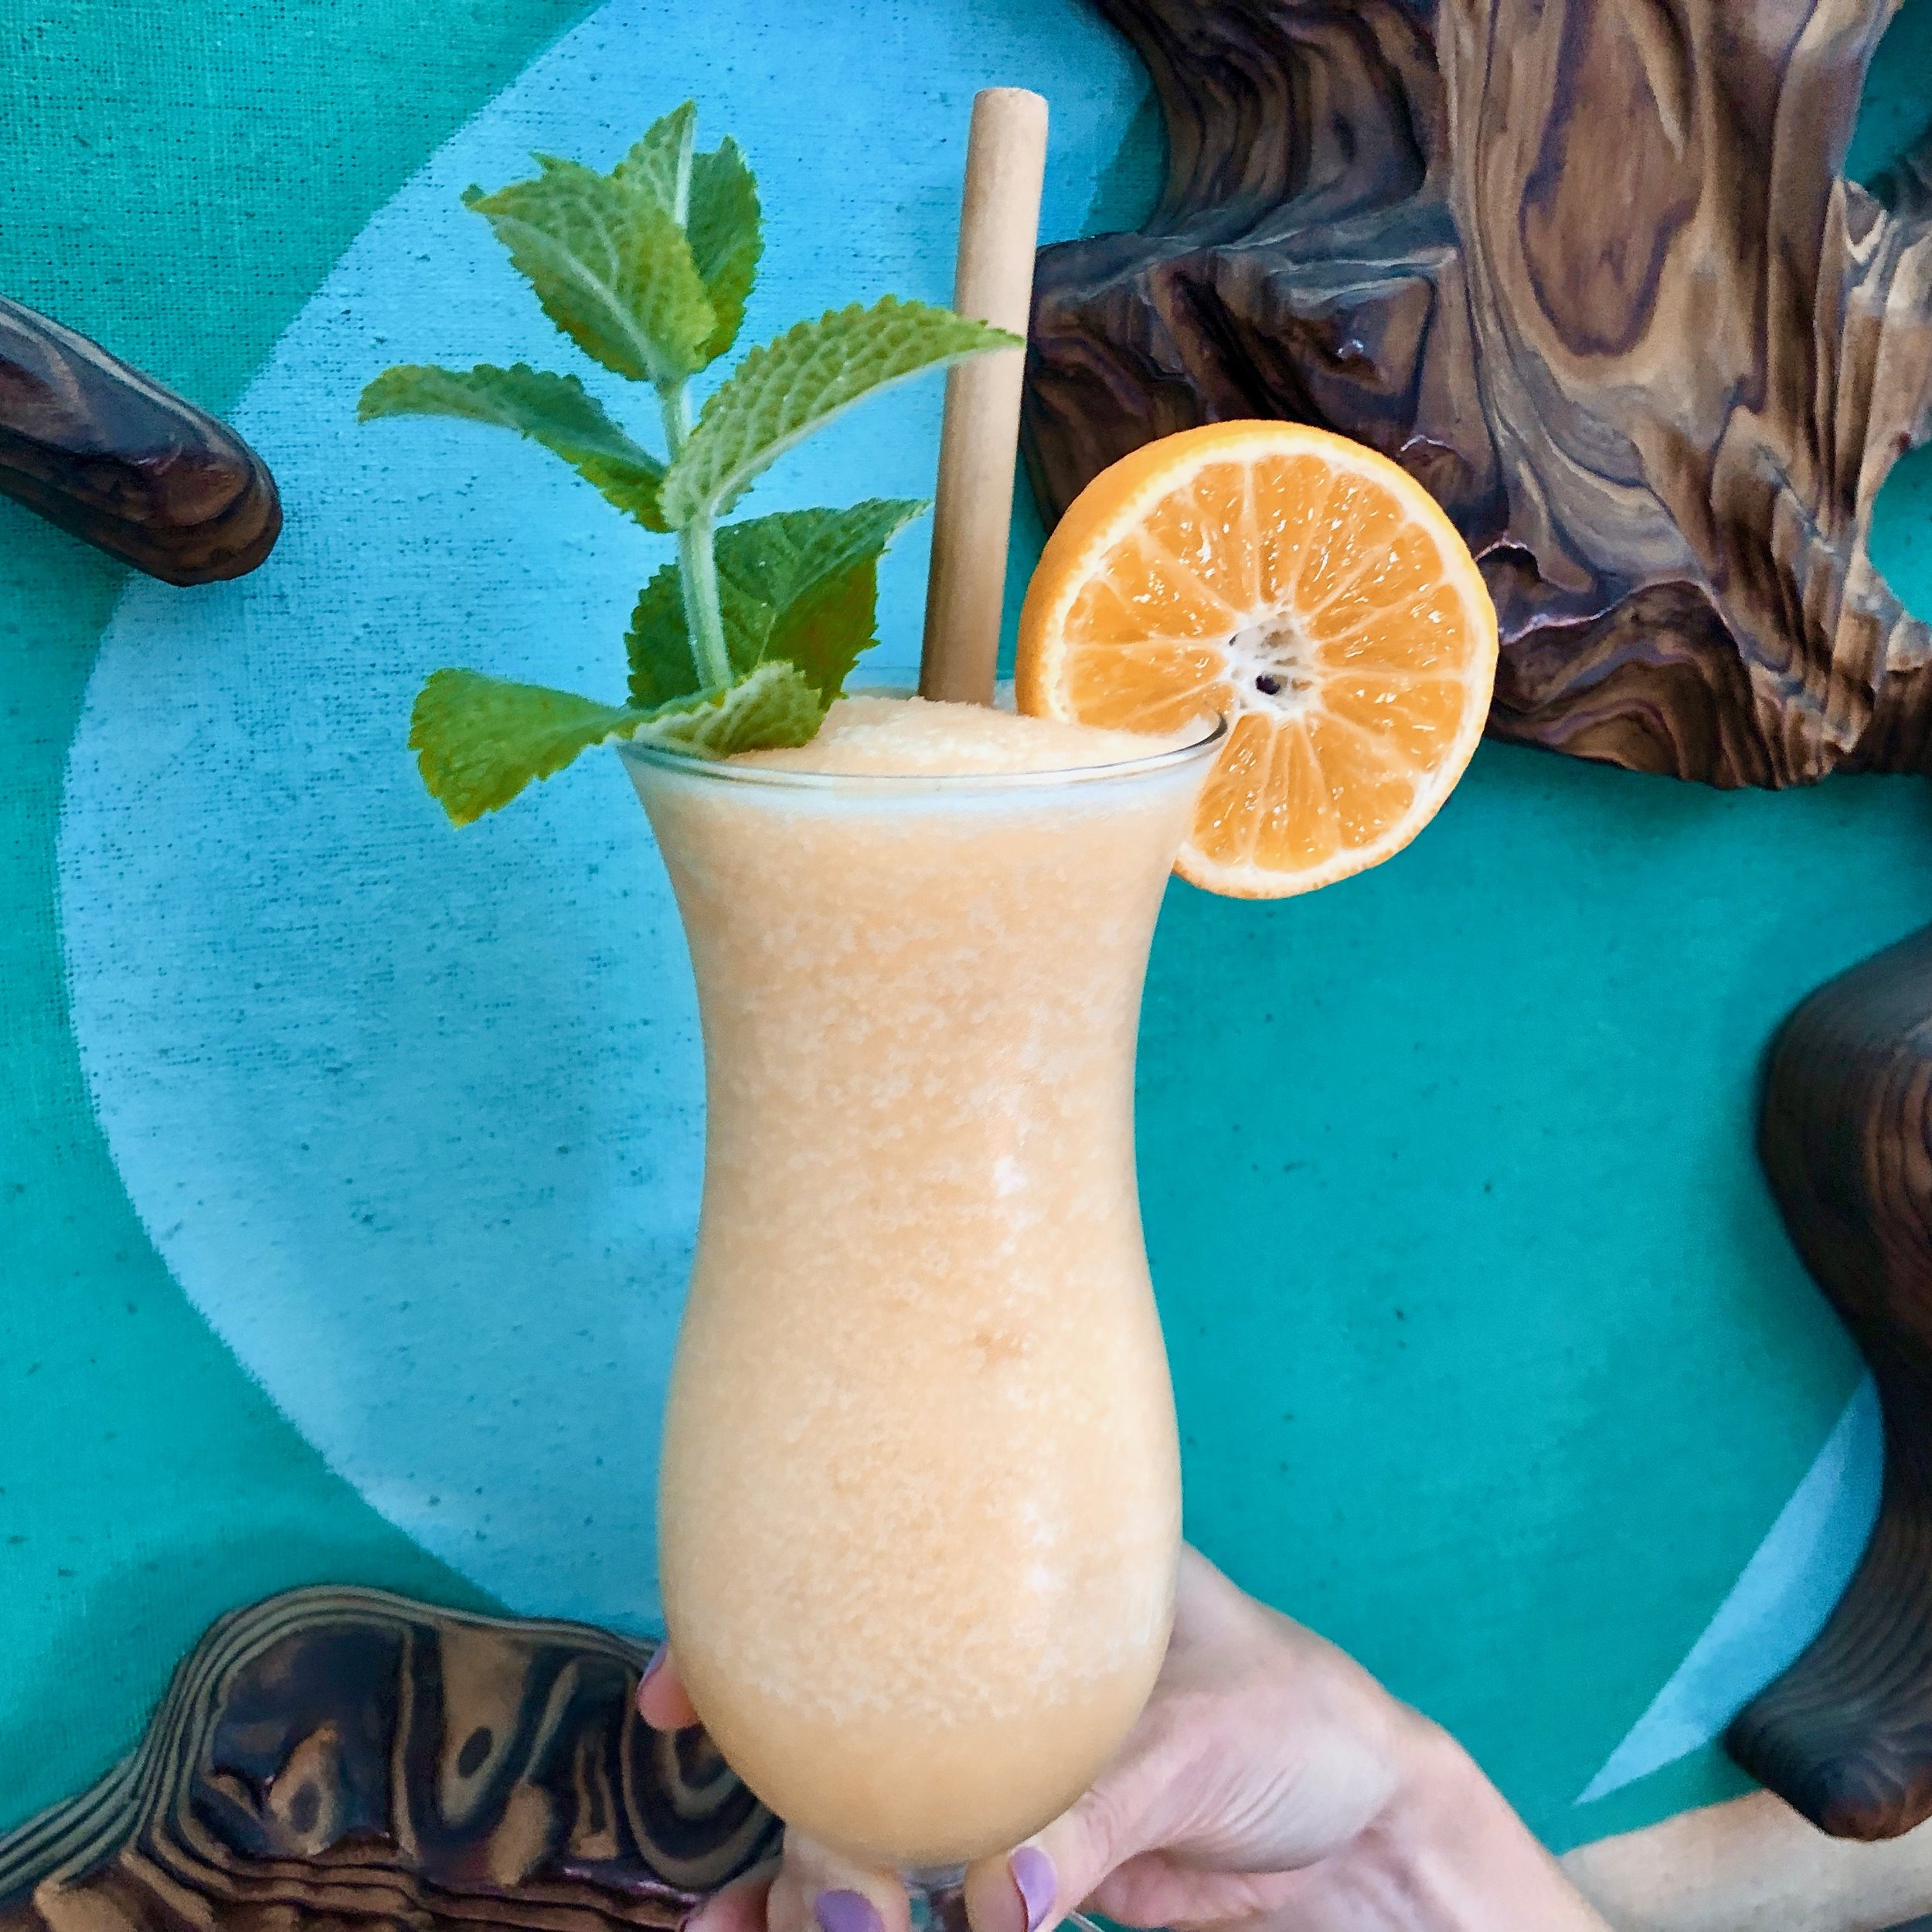 Bayou Swamp Slush is inspired by the Satsuma orchards of Louisiana and cane rum. Your blender will enjoy this unique concoction as mush as you do.